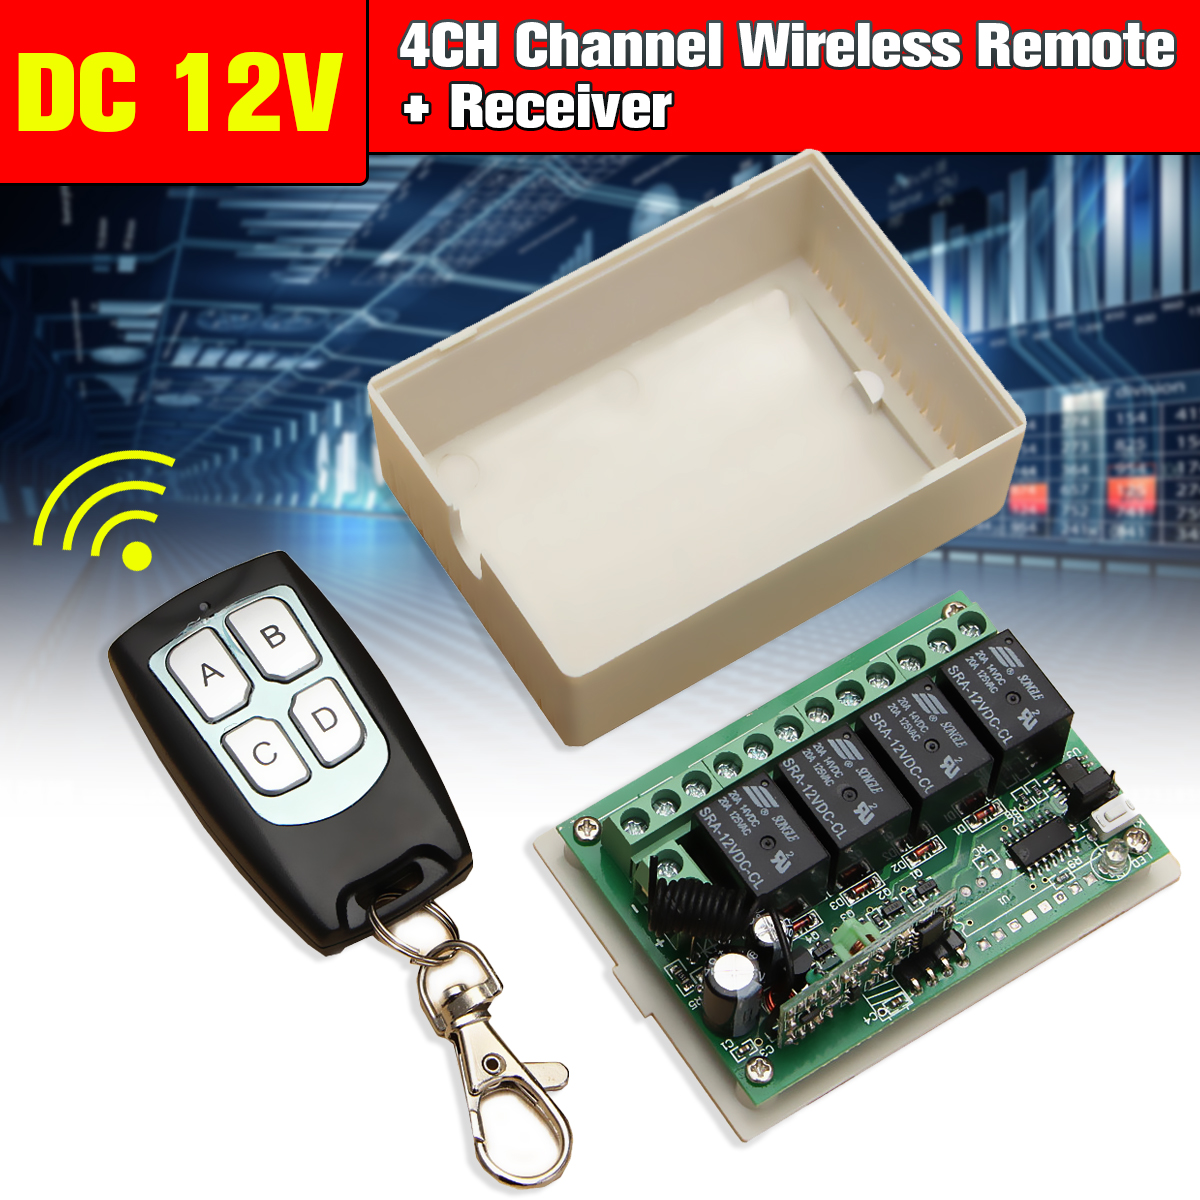 DC 12V 4CH 433MHz Small Channel Wireless Remote Control Controller Radio Switch 200m Transmitter + Receiver Interlock Self-lock